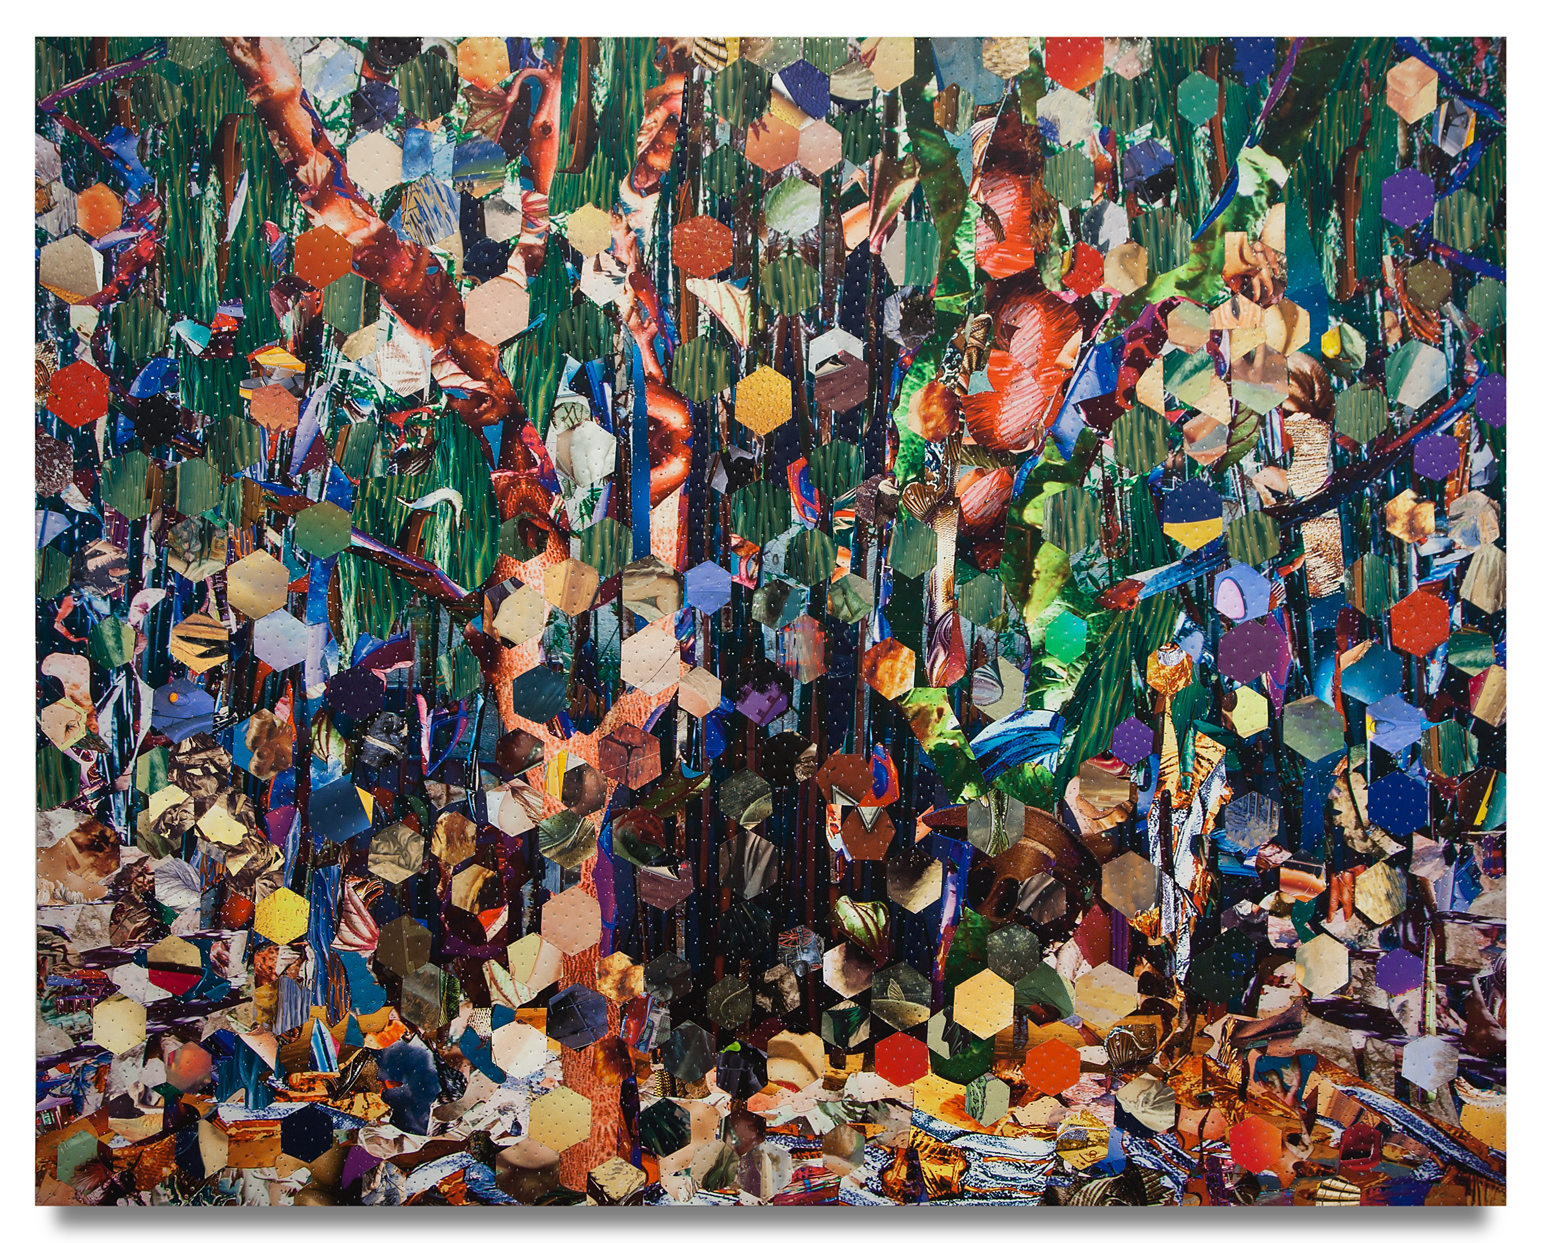 """Tony Berlant, """"Hat in the Ring,"""" 2018, found and fabricated printed tin collaged on plywood with steel brads, 57 x 72 inches"""